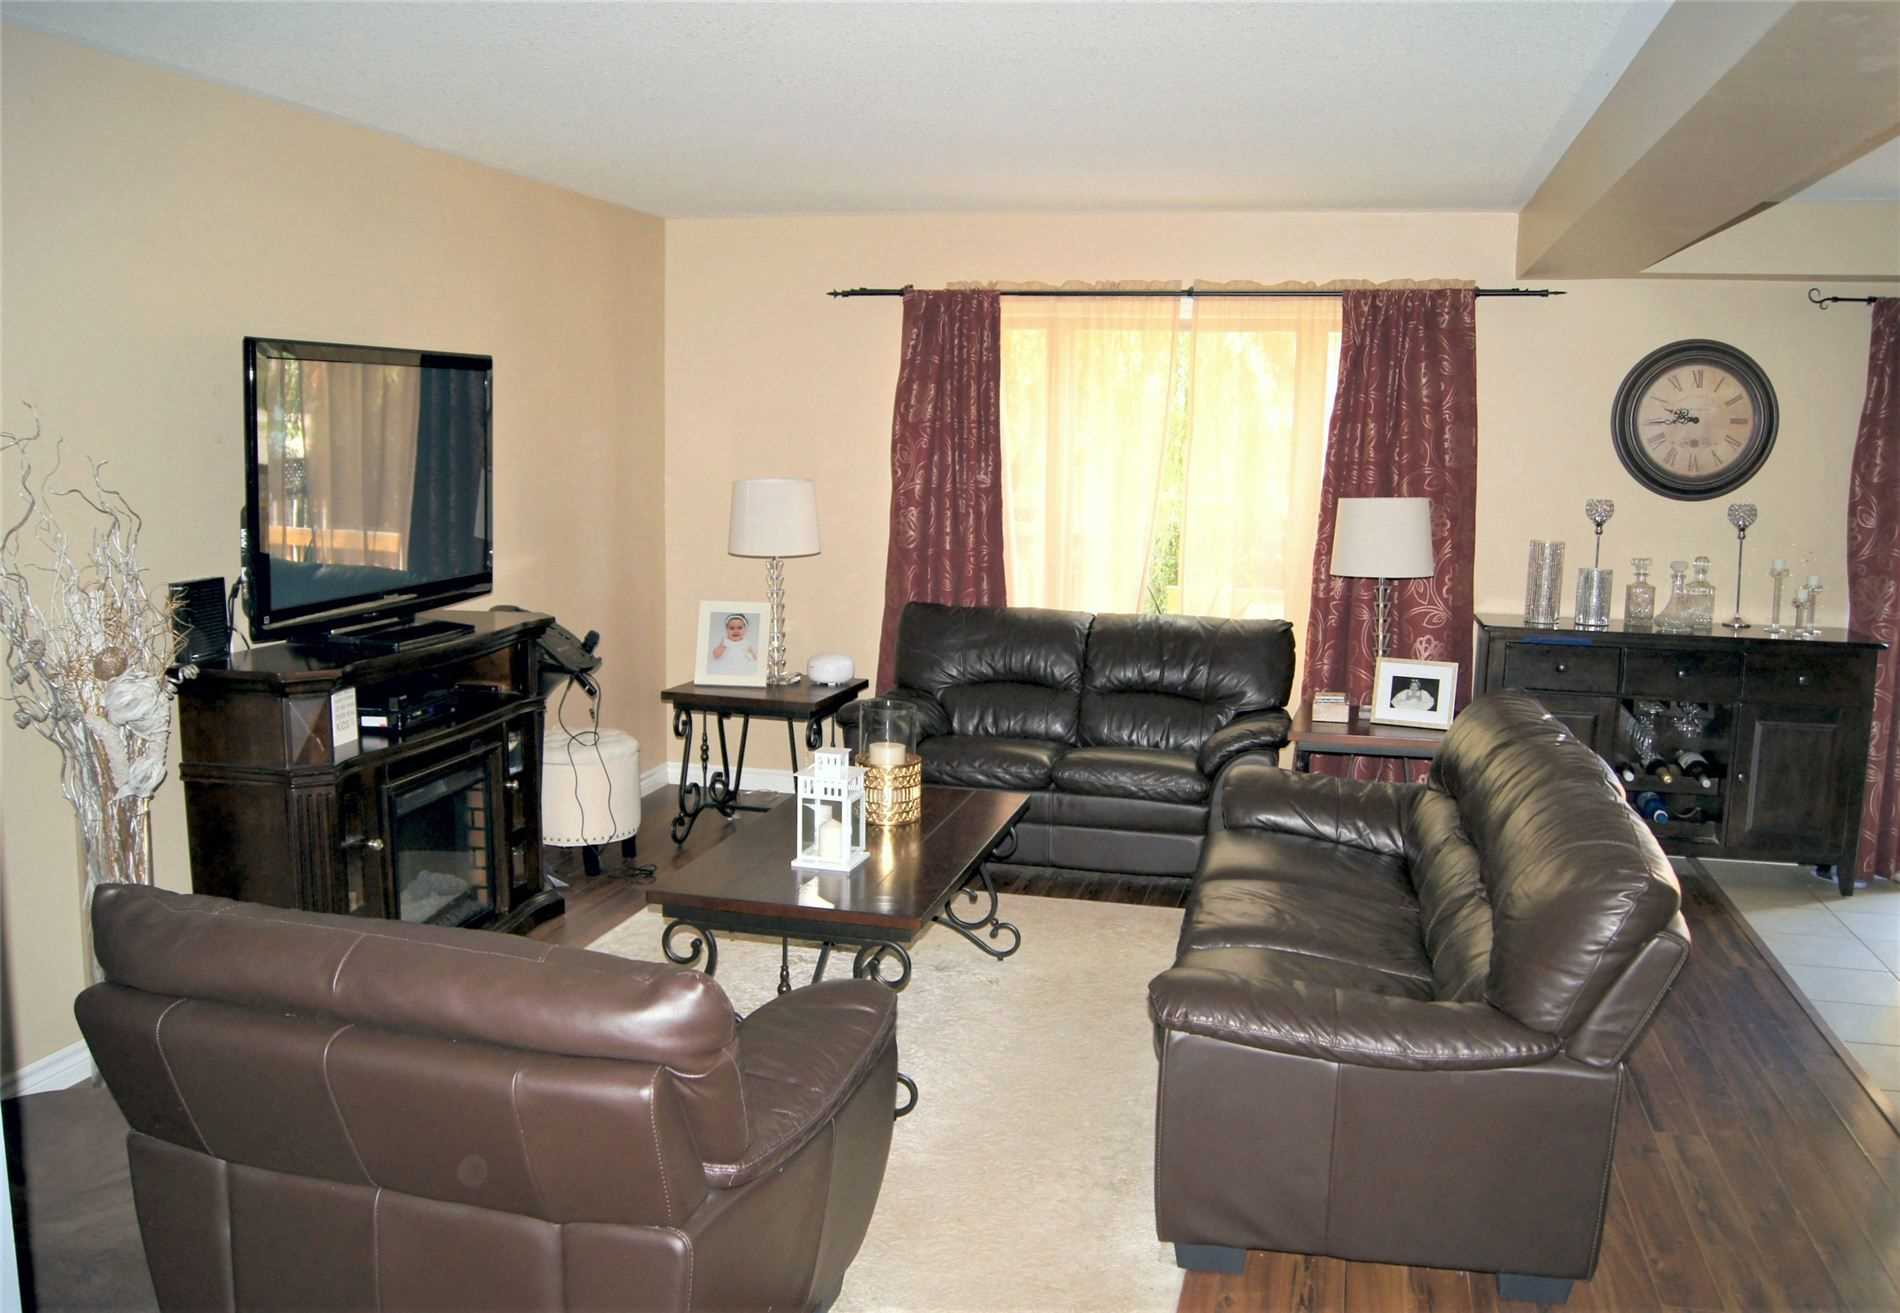 pictures of house for sale MLS: X4557089 located at 158 Fifth Ave, Brantford N3S1A2